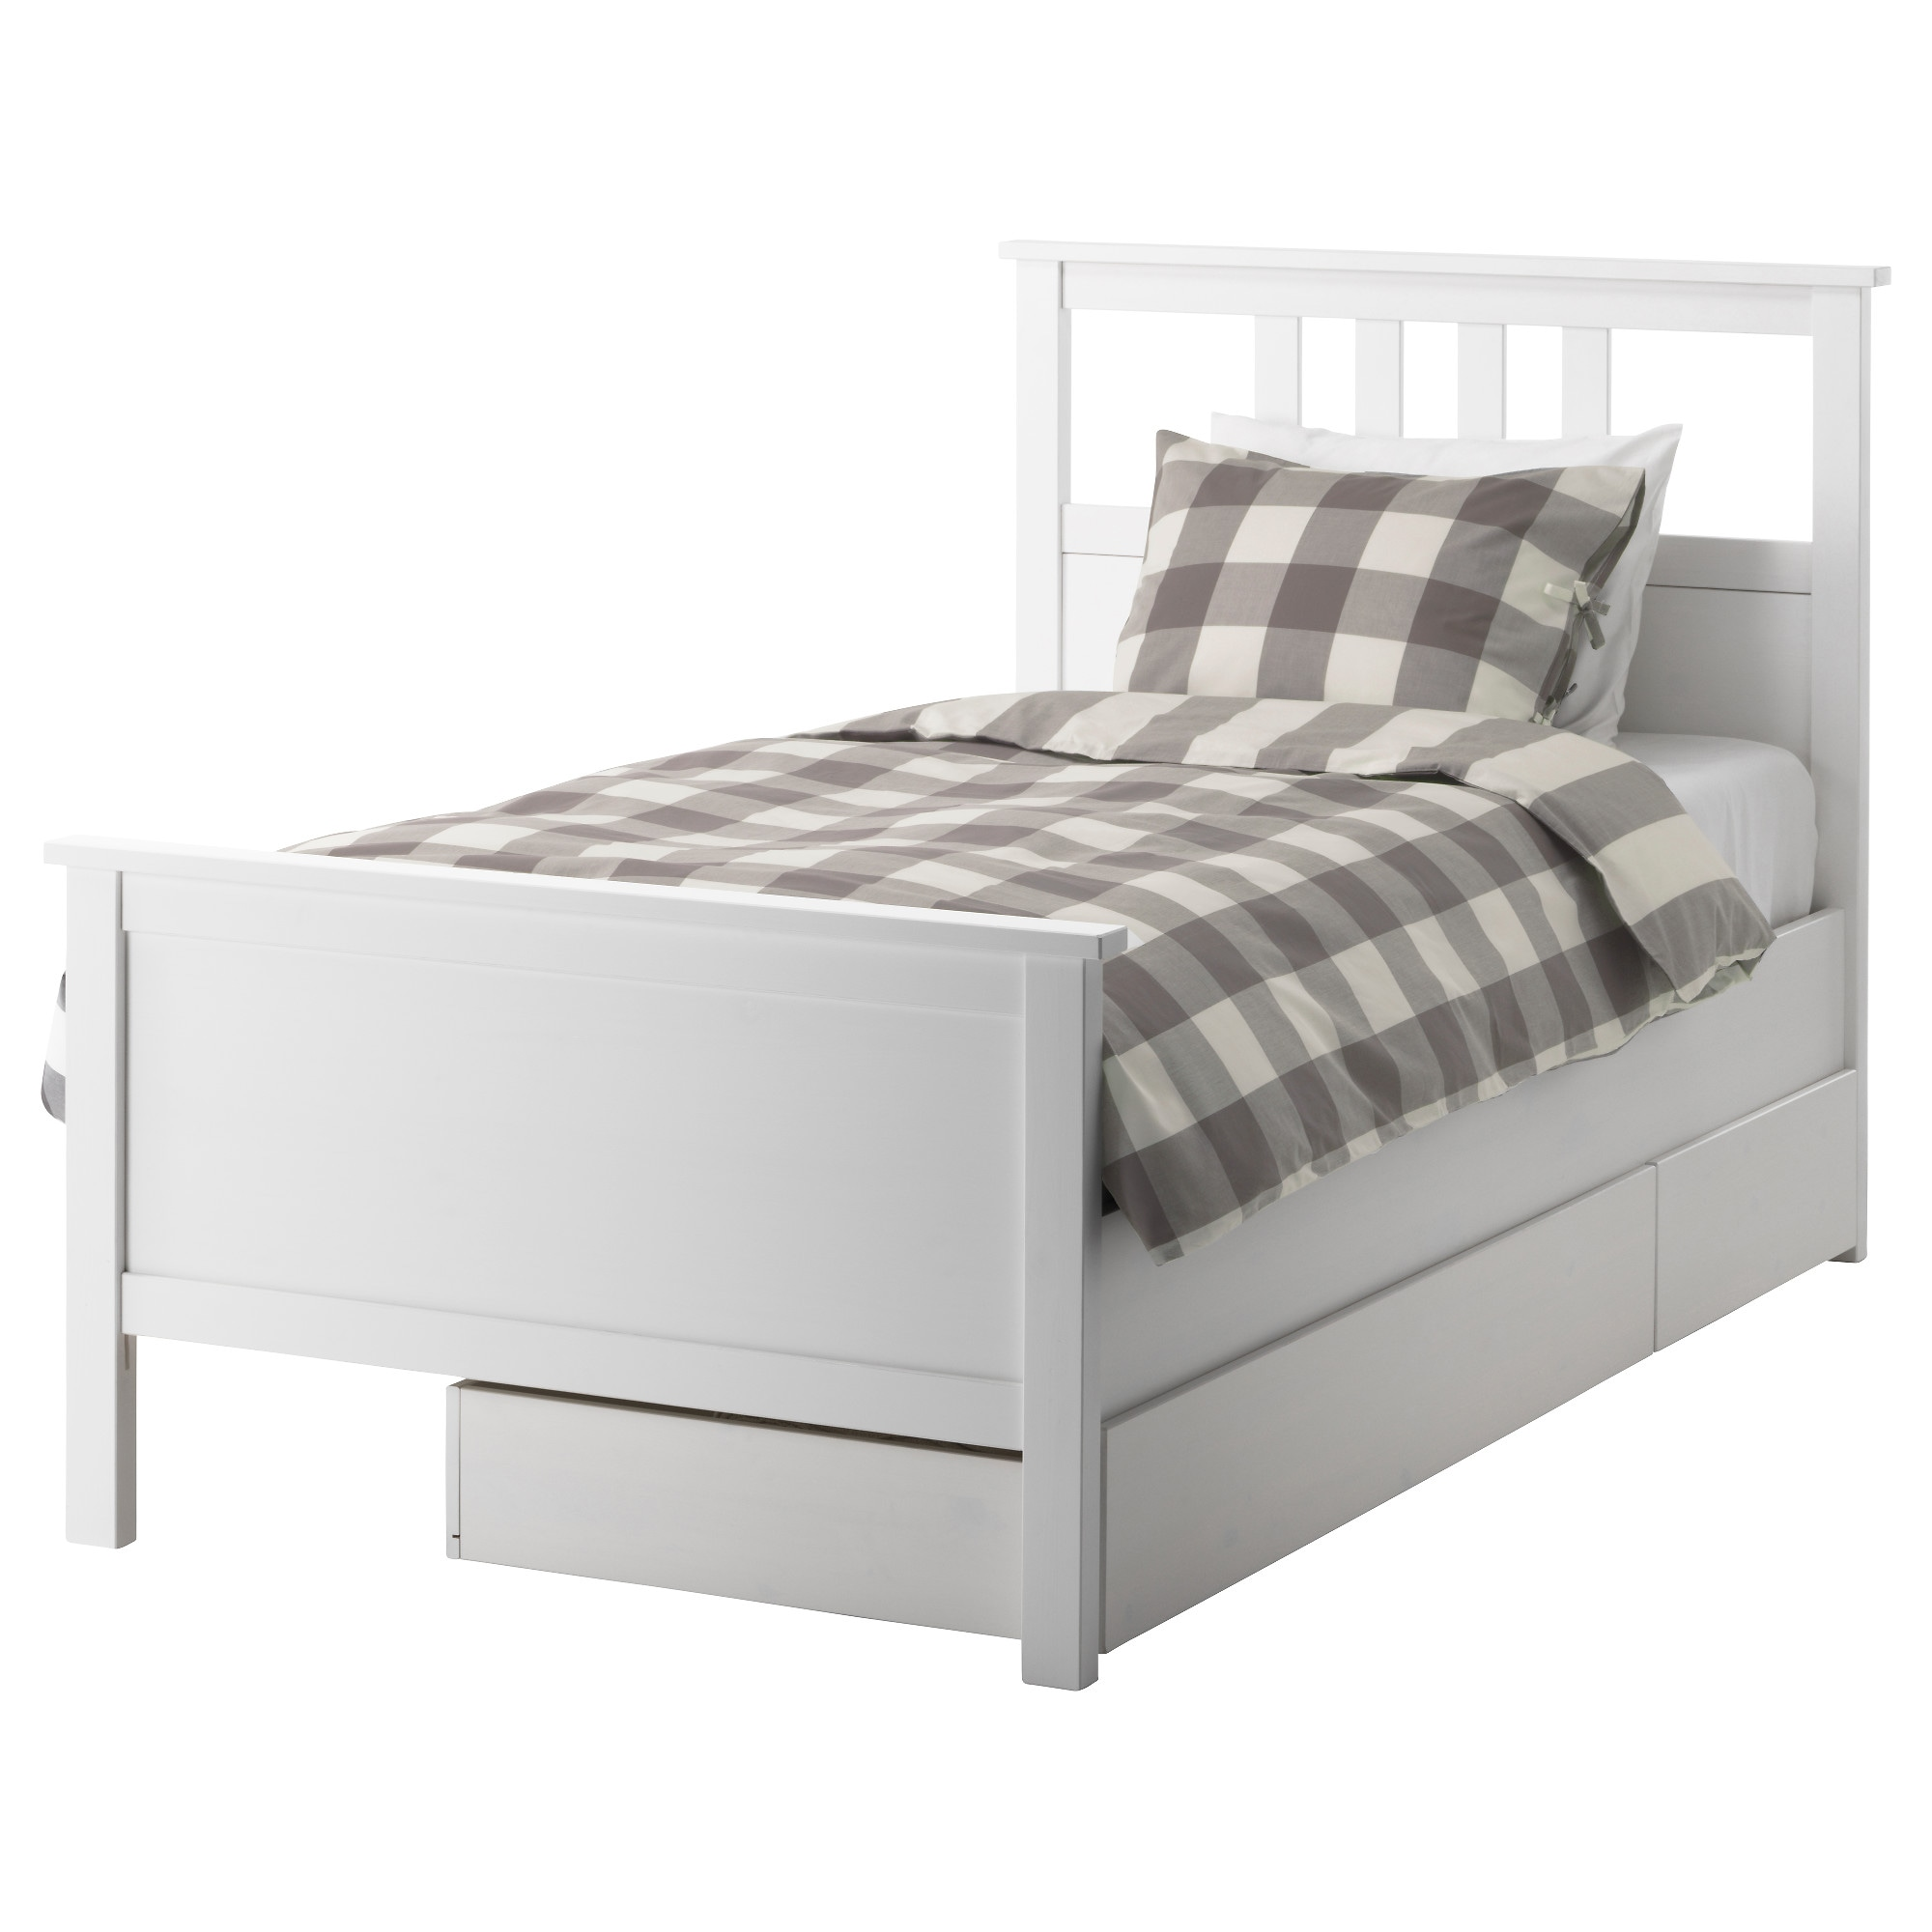 White Twin Bed With Drawers - Hemnes bed frame with 2 storage boxes white stain length 79 1 8